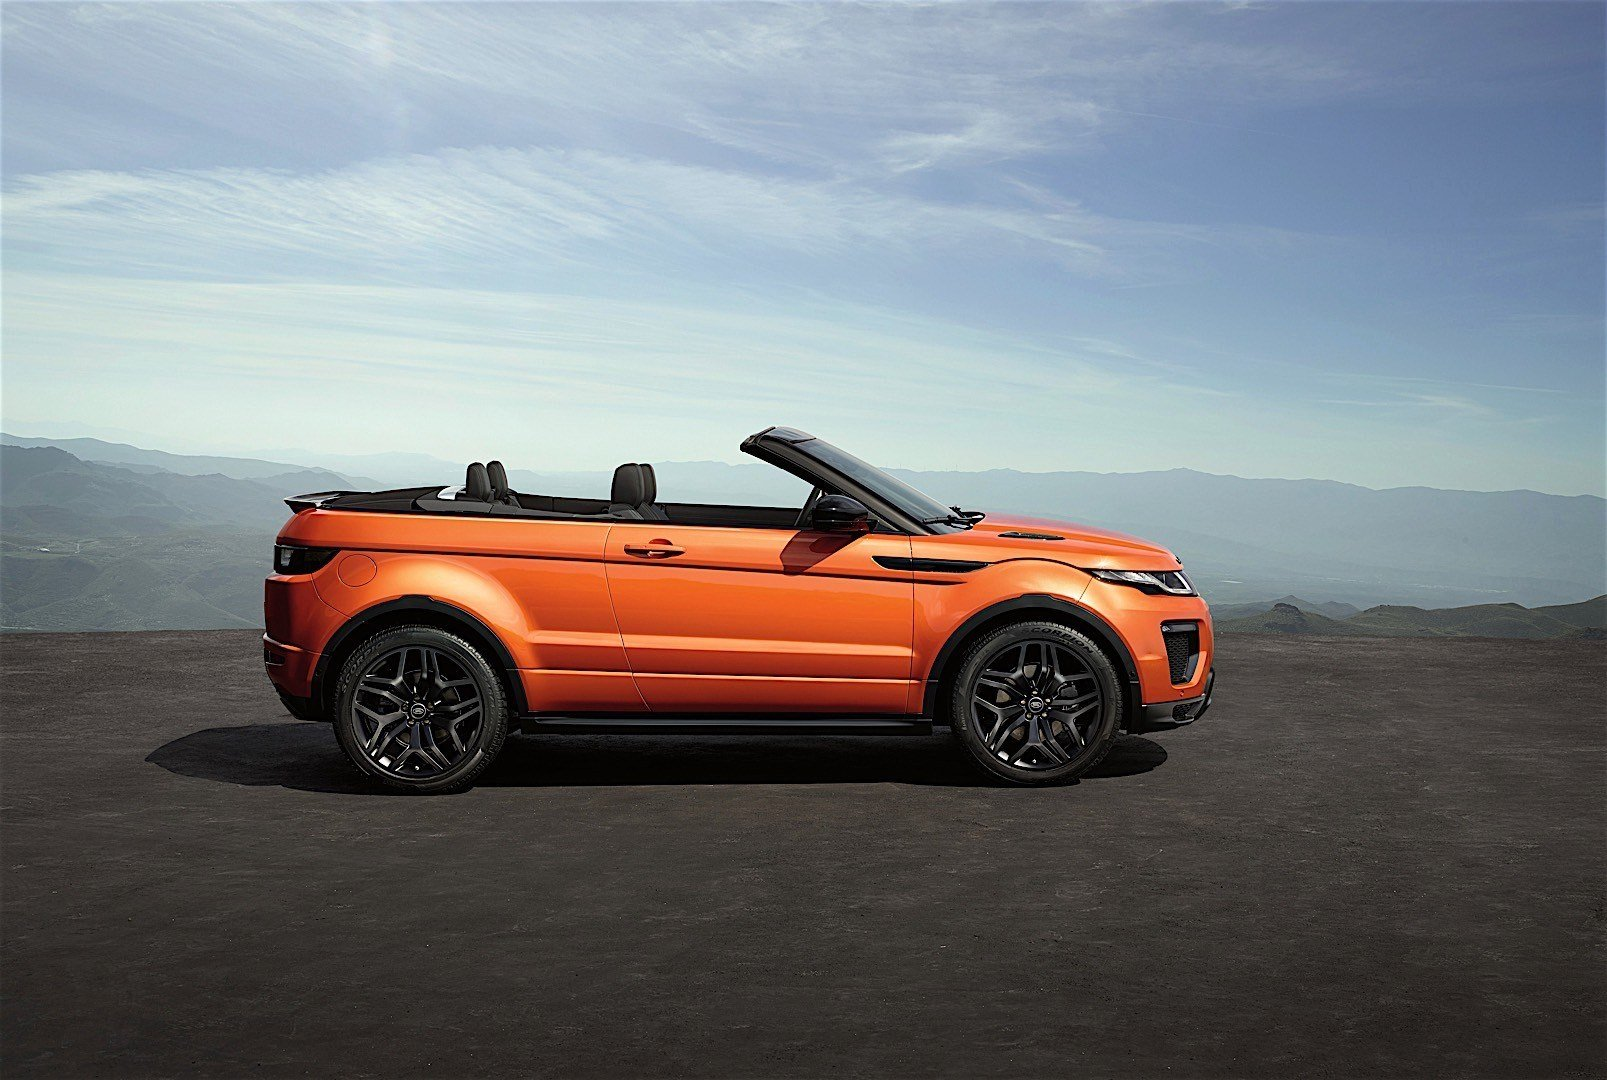 New Land Rover Range Rover Evoque Convertible Specs 2016 On This Month